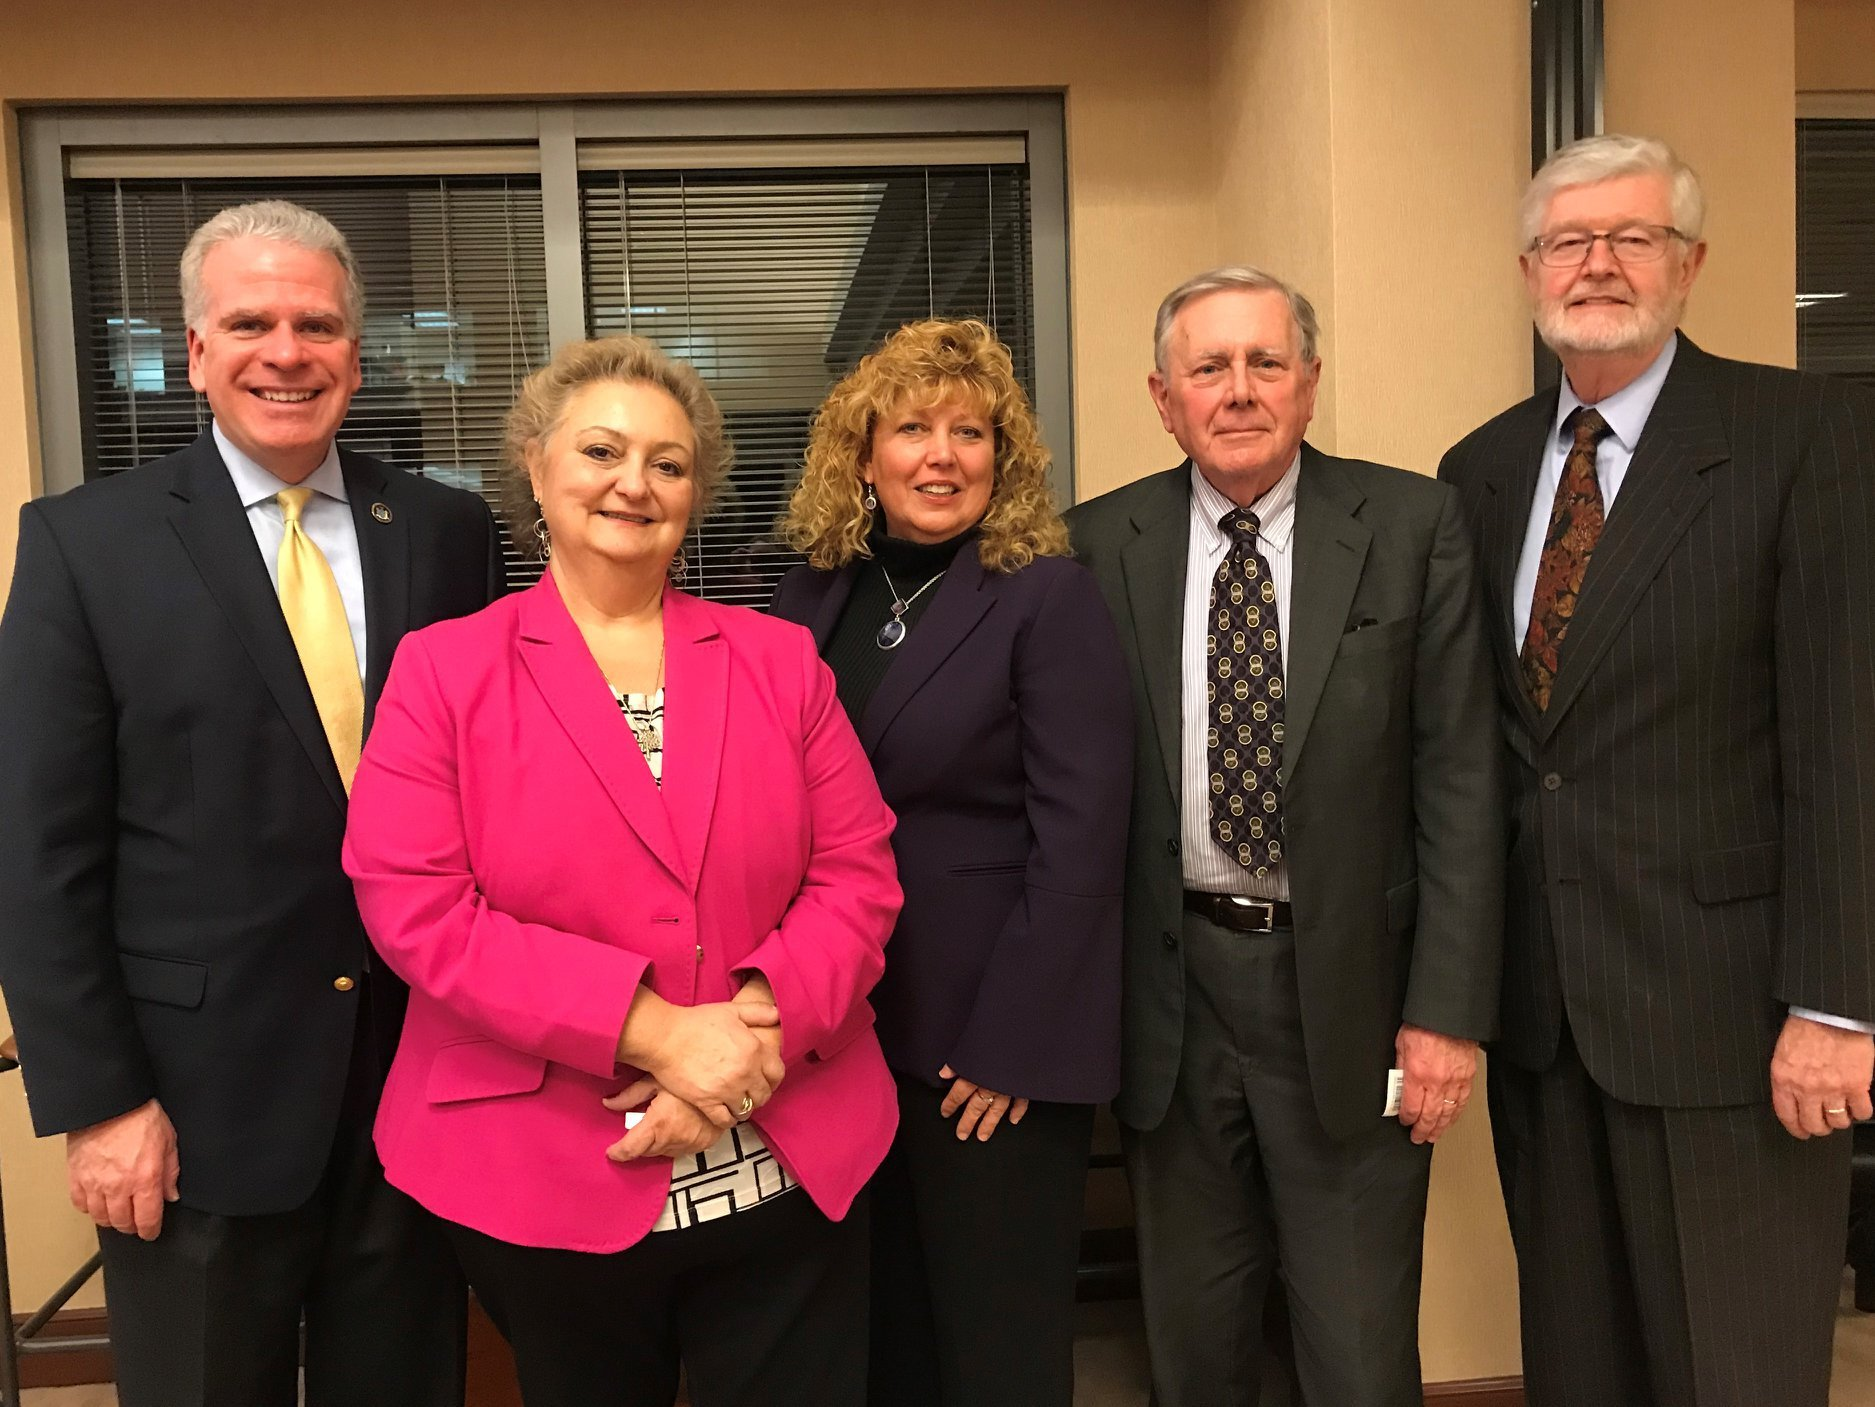 group photo of board members Carla Palumbo, Bruce Lawrence and David Schraver with Foundation Executive Deborah Auspelmyer and guest